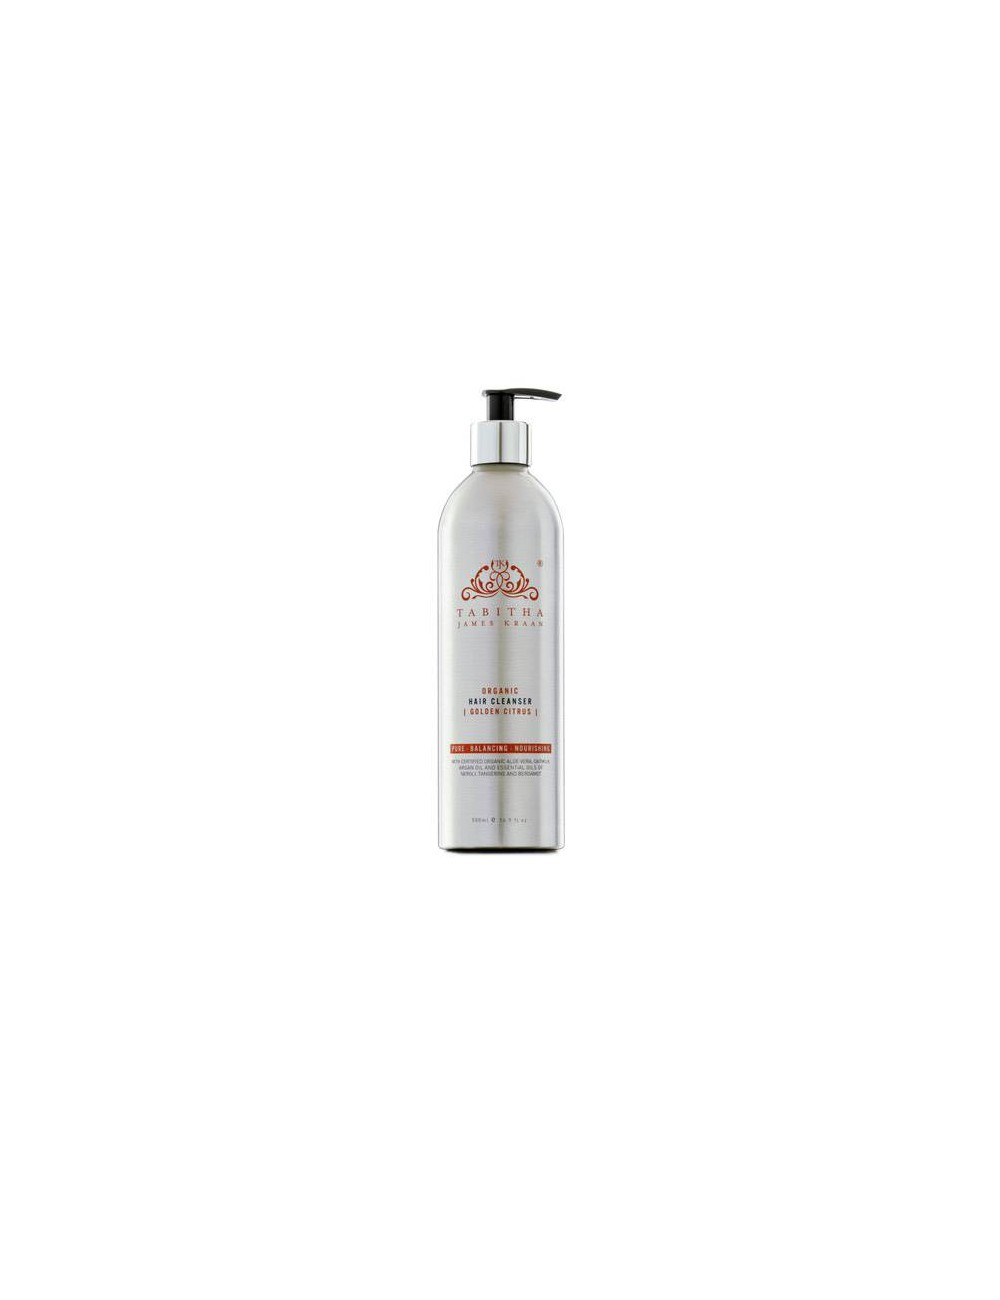 TJK Large Size Golden Citrus Hair Cleanser 500ml